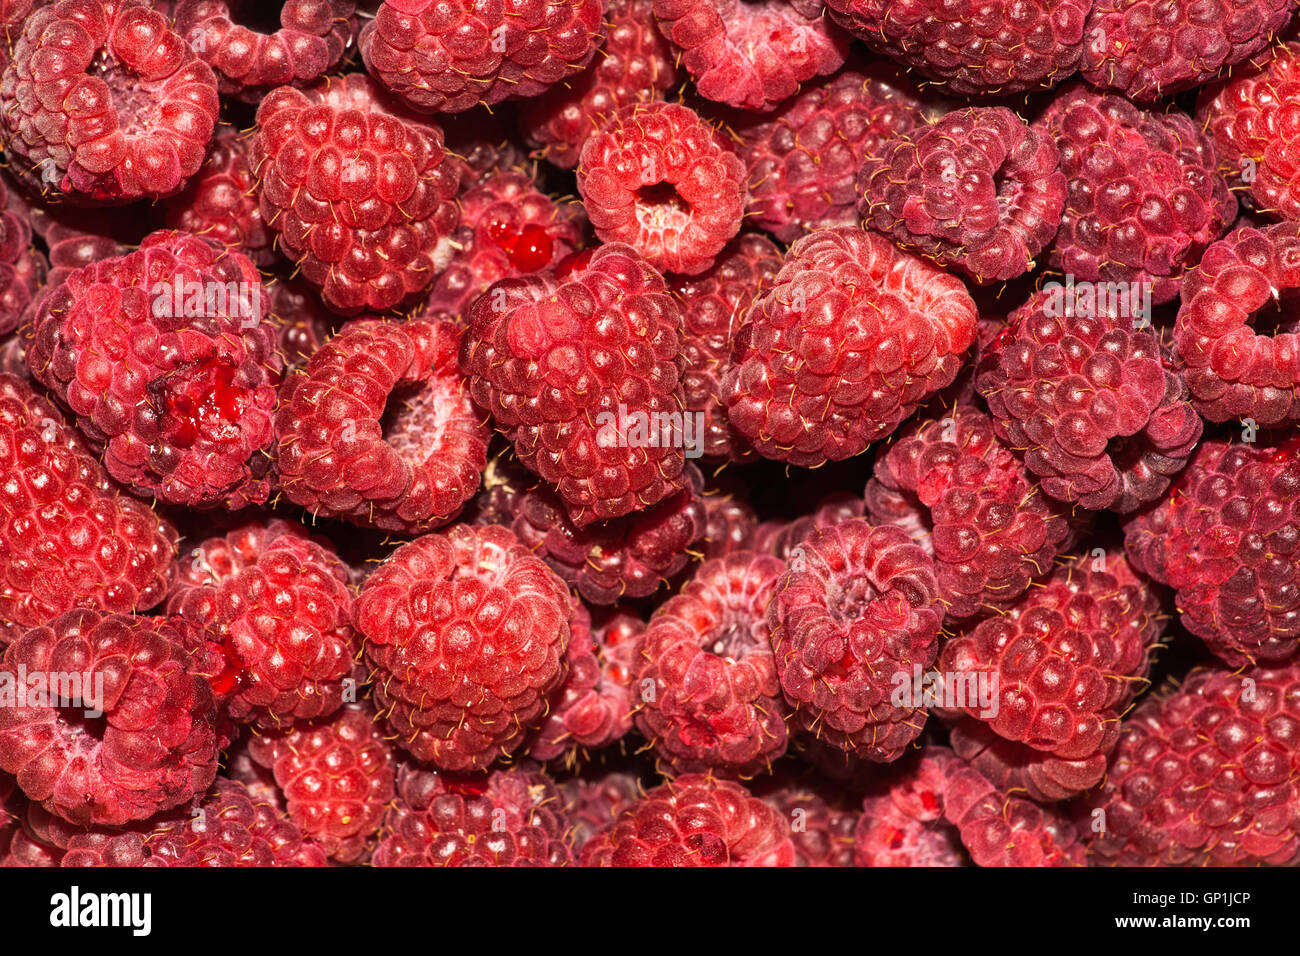 A pile of red yummy raspberry berries closeup view raspberry a pile of red yummy raspberry berries closeup view raspberry symbolizes love patience protection and fertility biocorpaavc